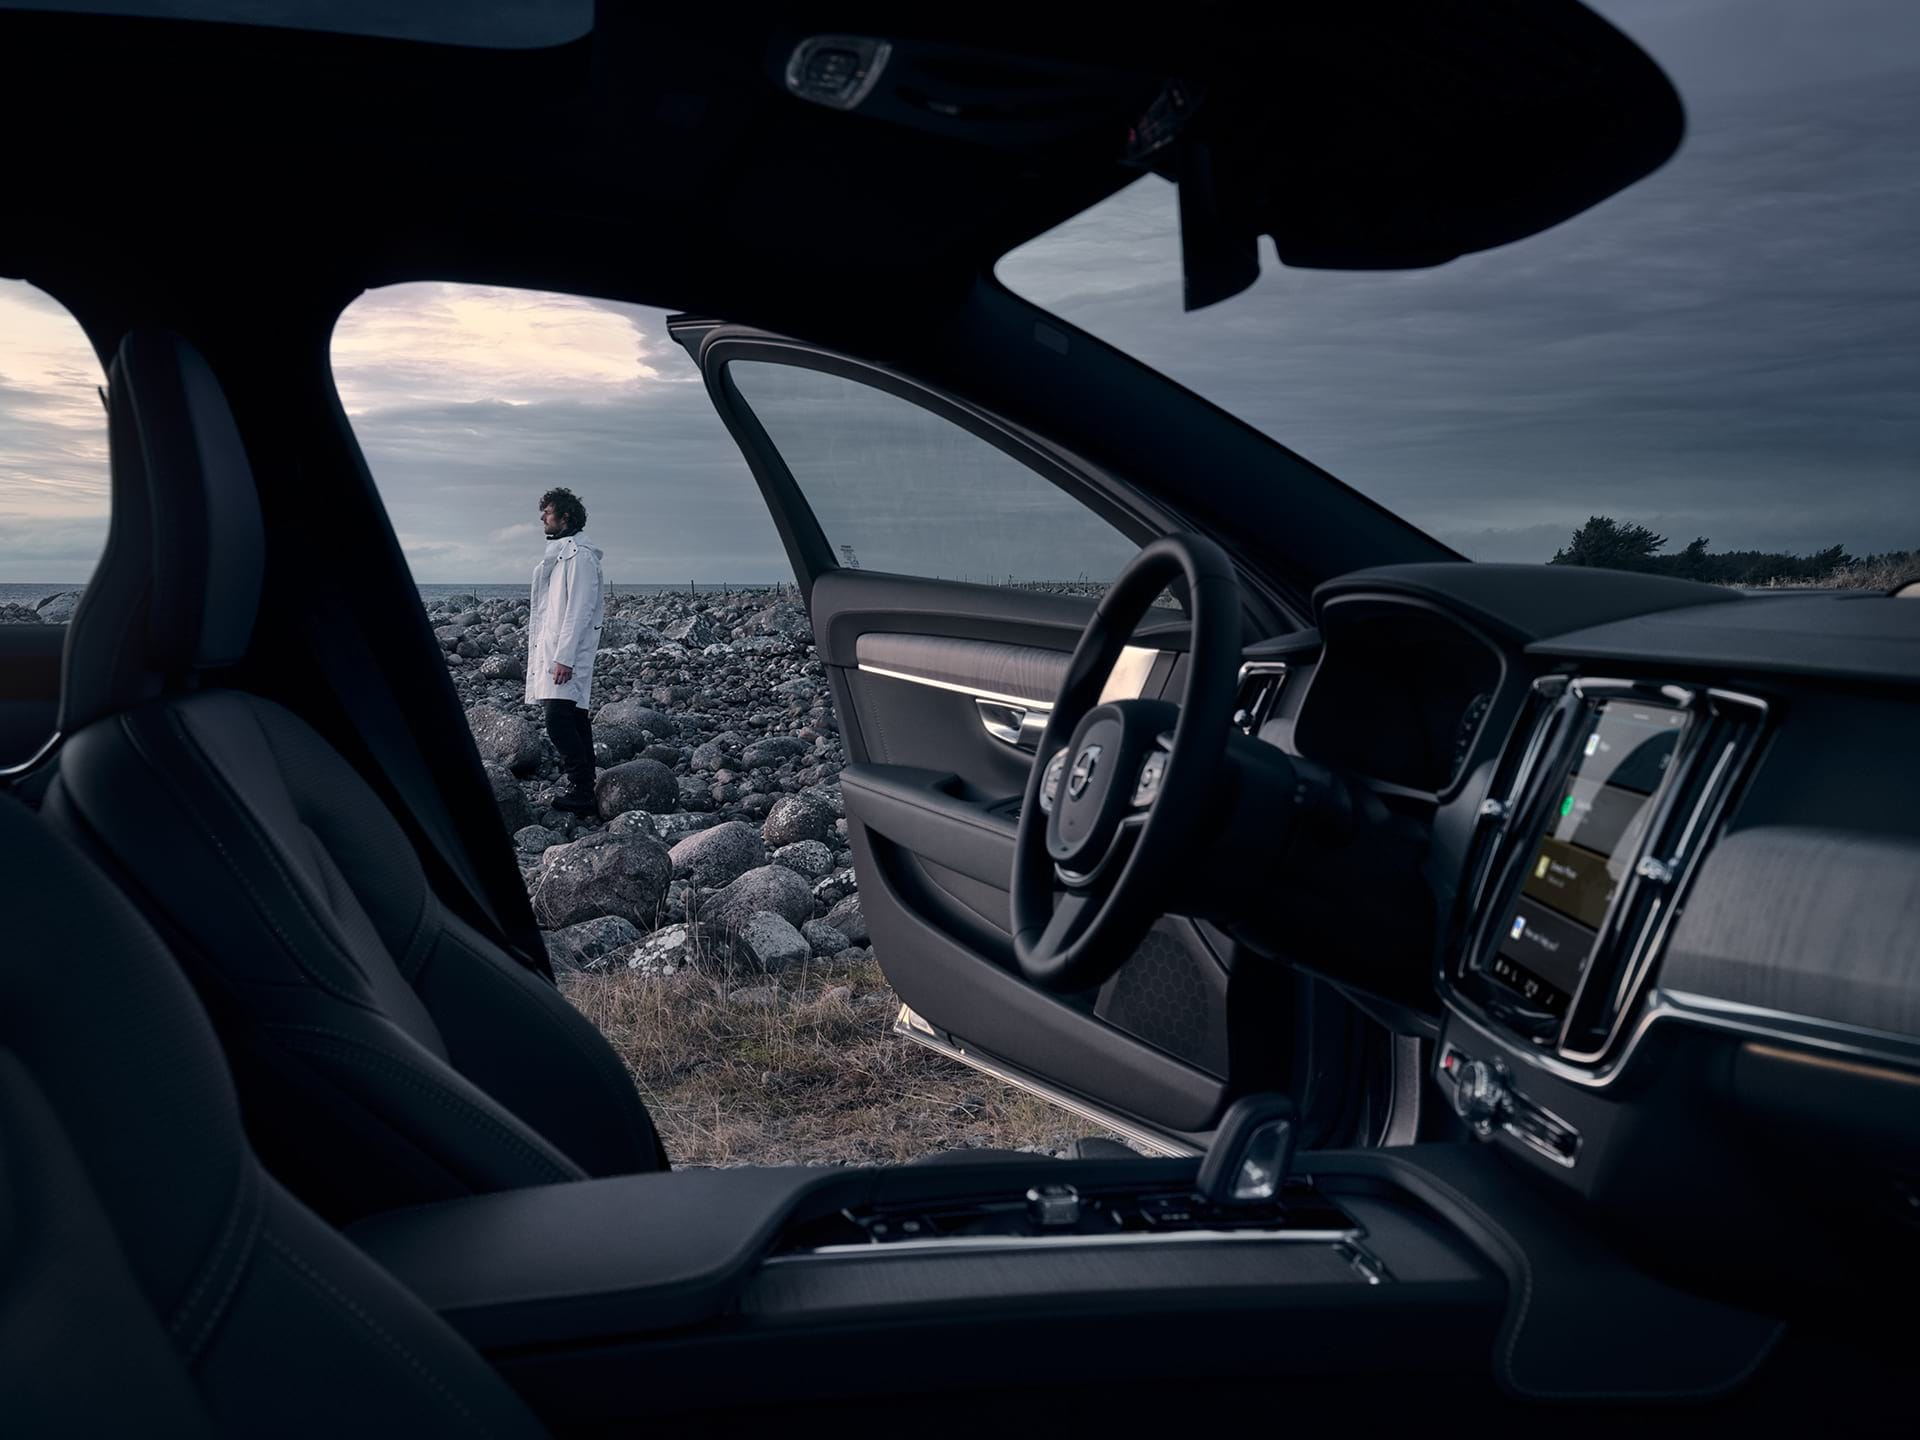 Inside a V90 Cross Country with black interior, a man is standing outside.